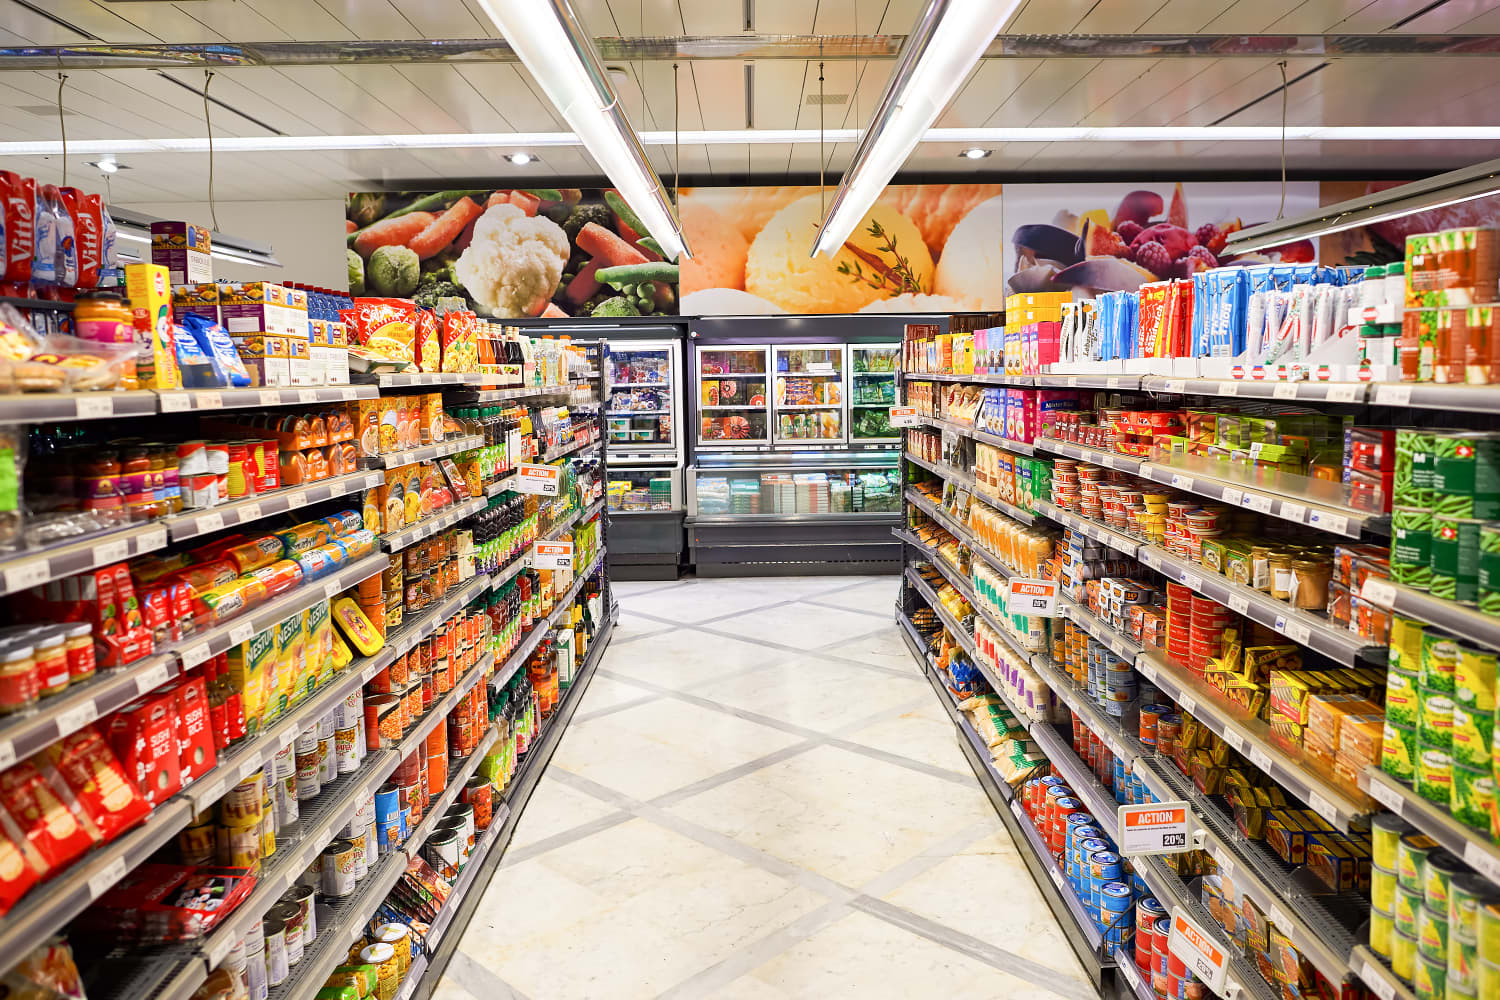 Why You Shouldn't Skip the Middle Aisles of the Grocery Store